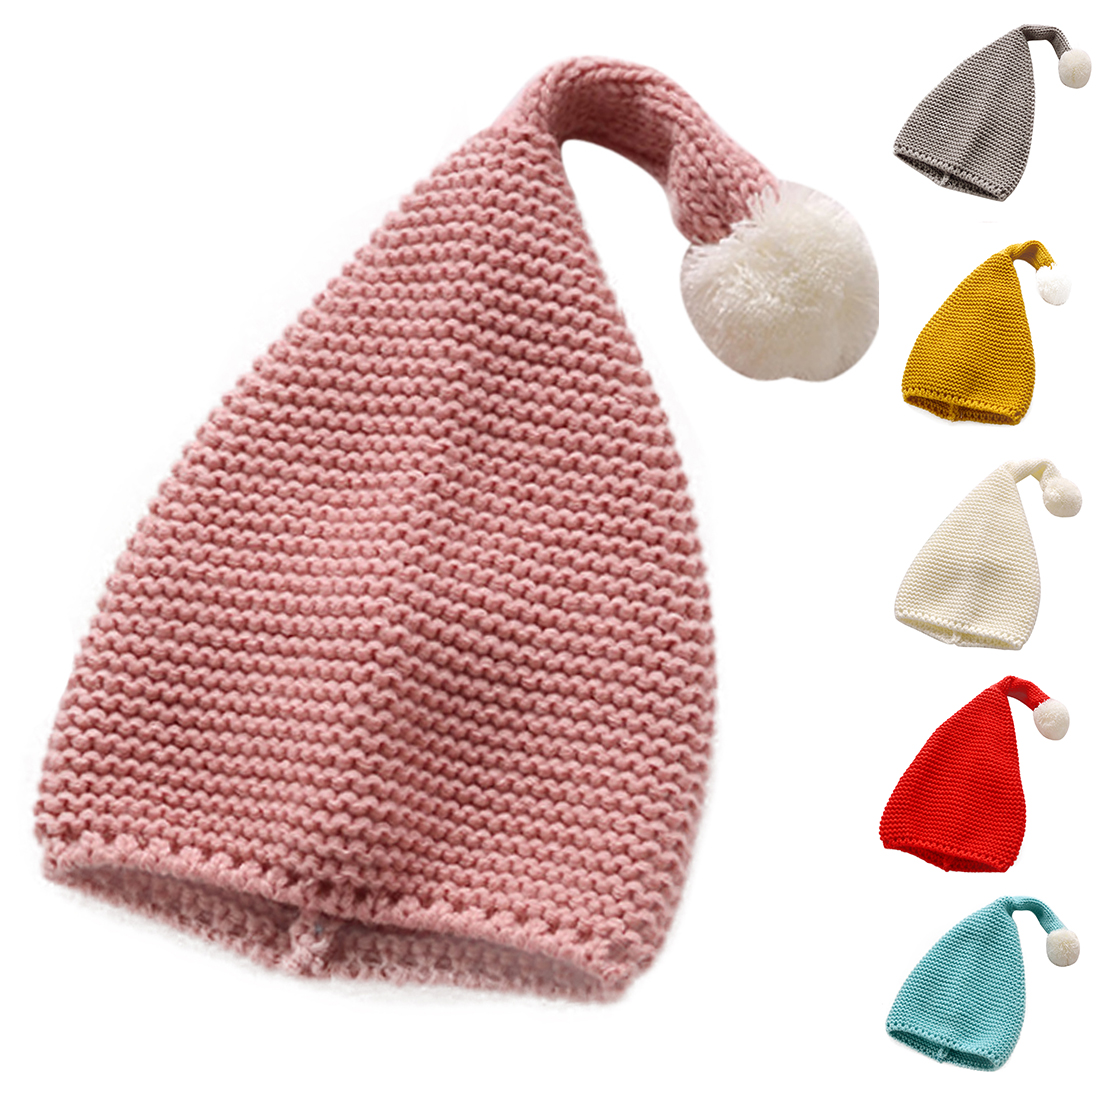 Fashion Children 39 s woolen Christmas hat candy knit big ball cute warm autumn and winter hat solid color elf long tail cap in Men 39 s Skullies amp Beanies from Apparel Accessories